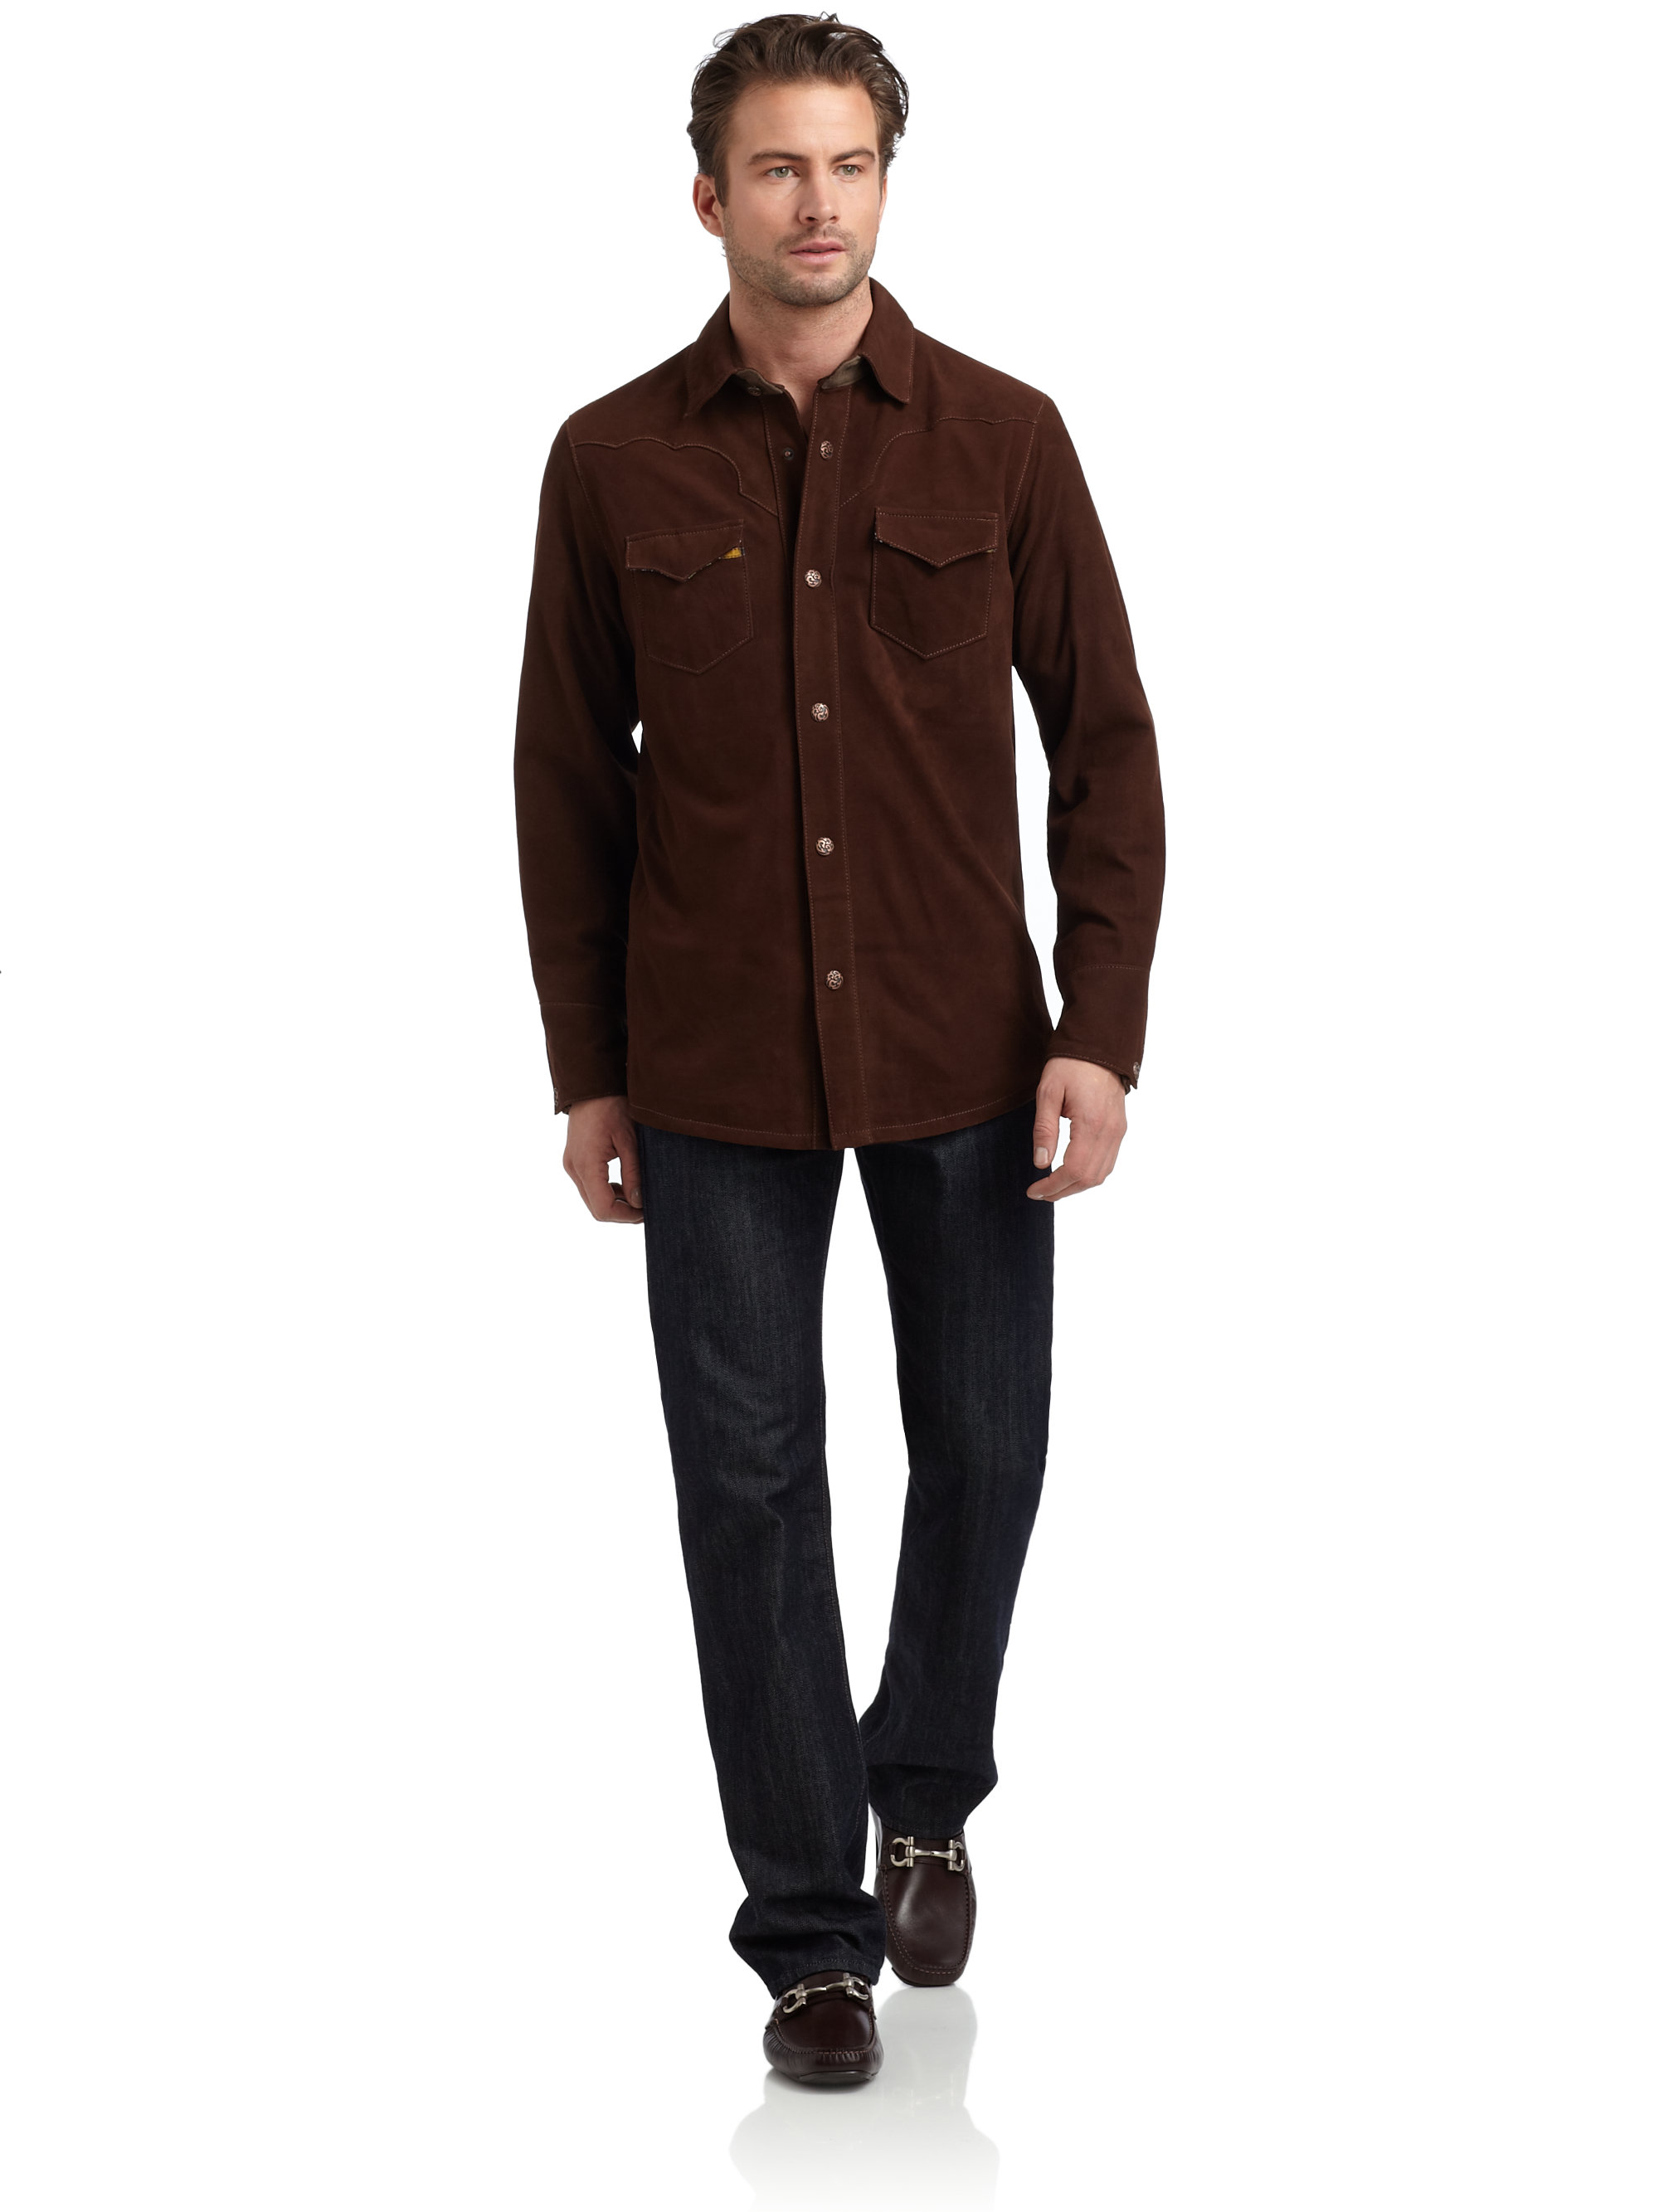 Lyst - Robert graham Suede Button Down Shirt in Brown for Men